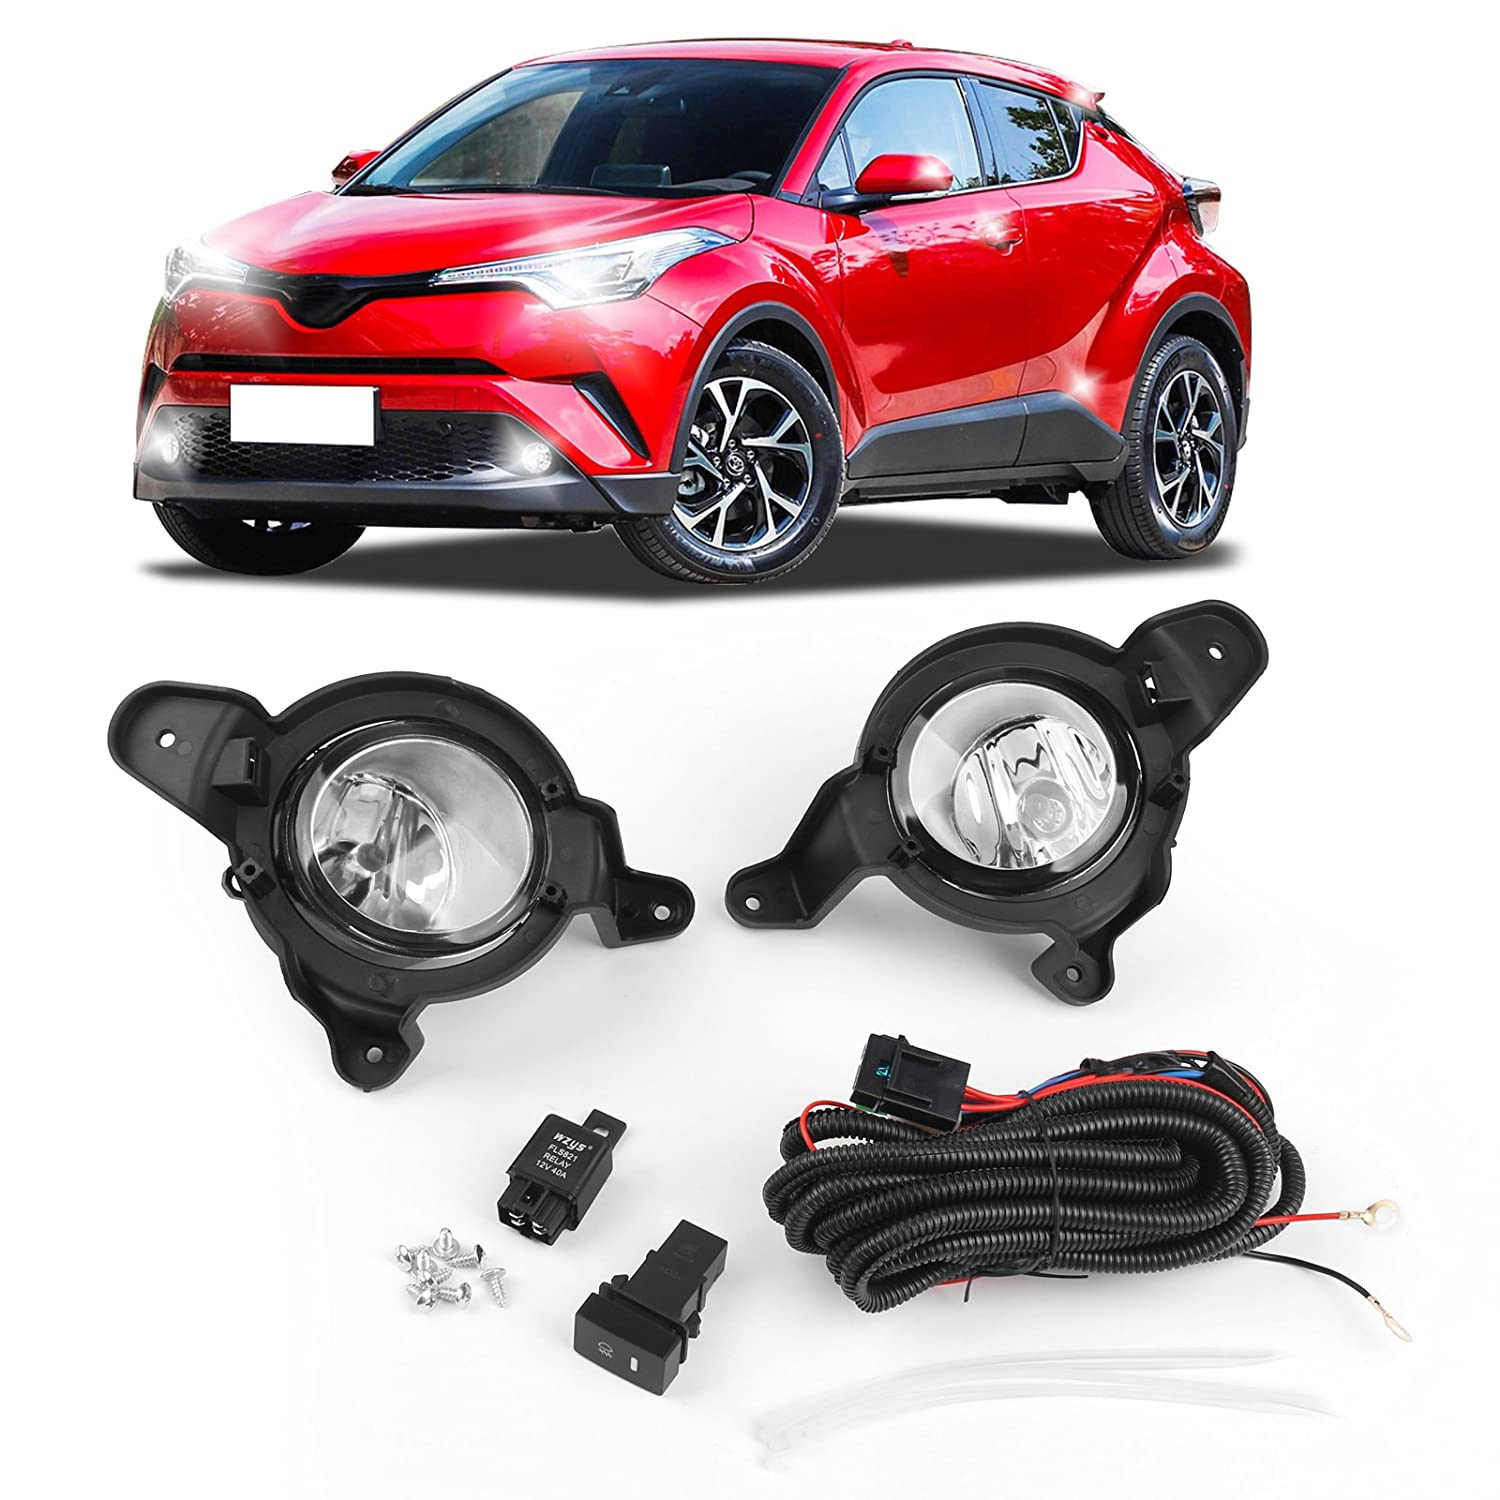 Areyourshop Front Bumper Light Fog Lamp w/Wires Switch Emark For Toyota C-HR CHR 2017 2018